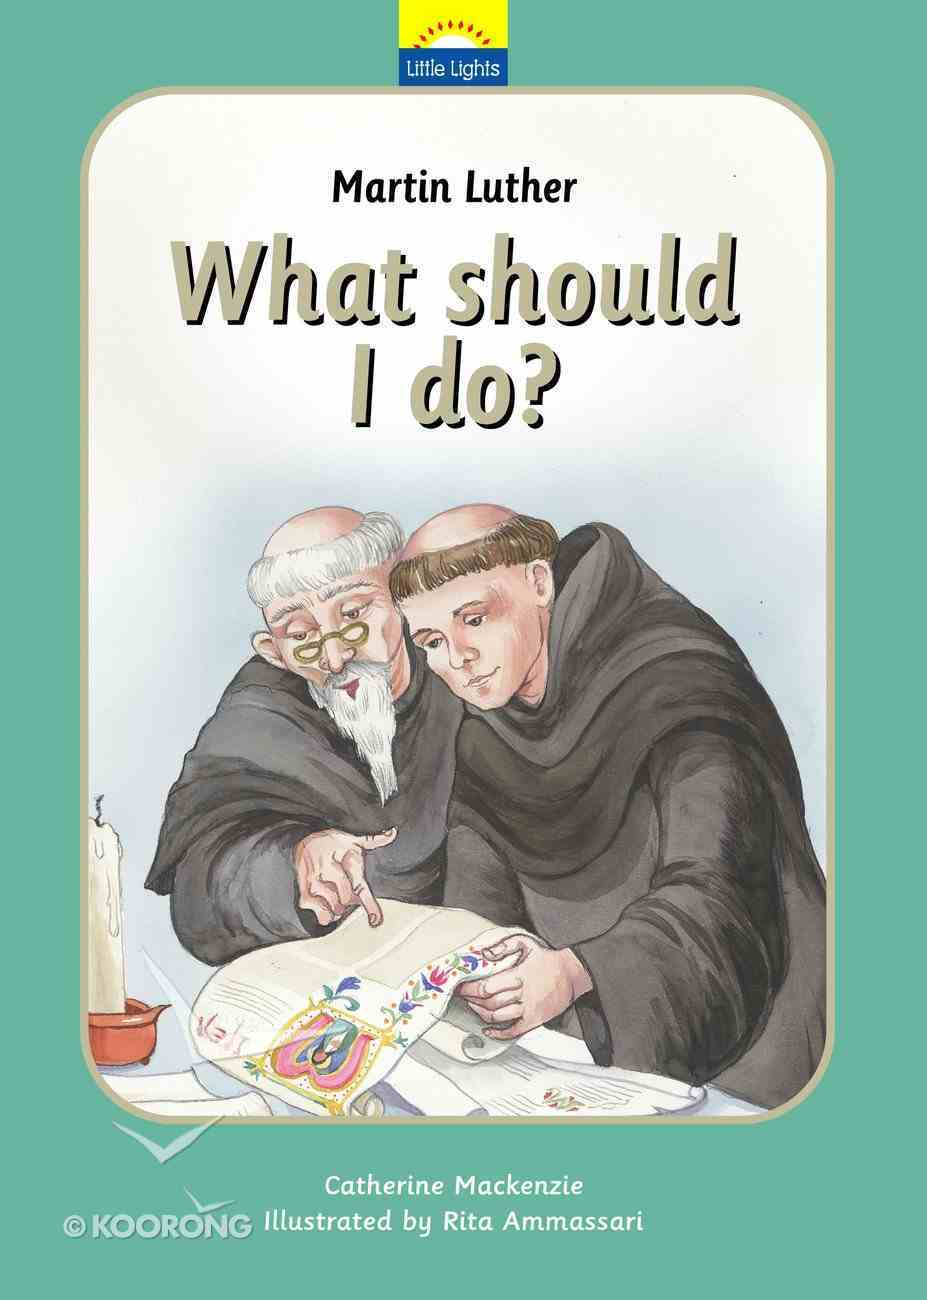 Martin Luther - What Should I Do? (Little Lights Biography Series) Hardback